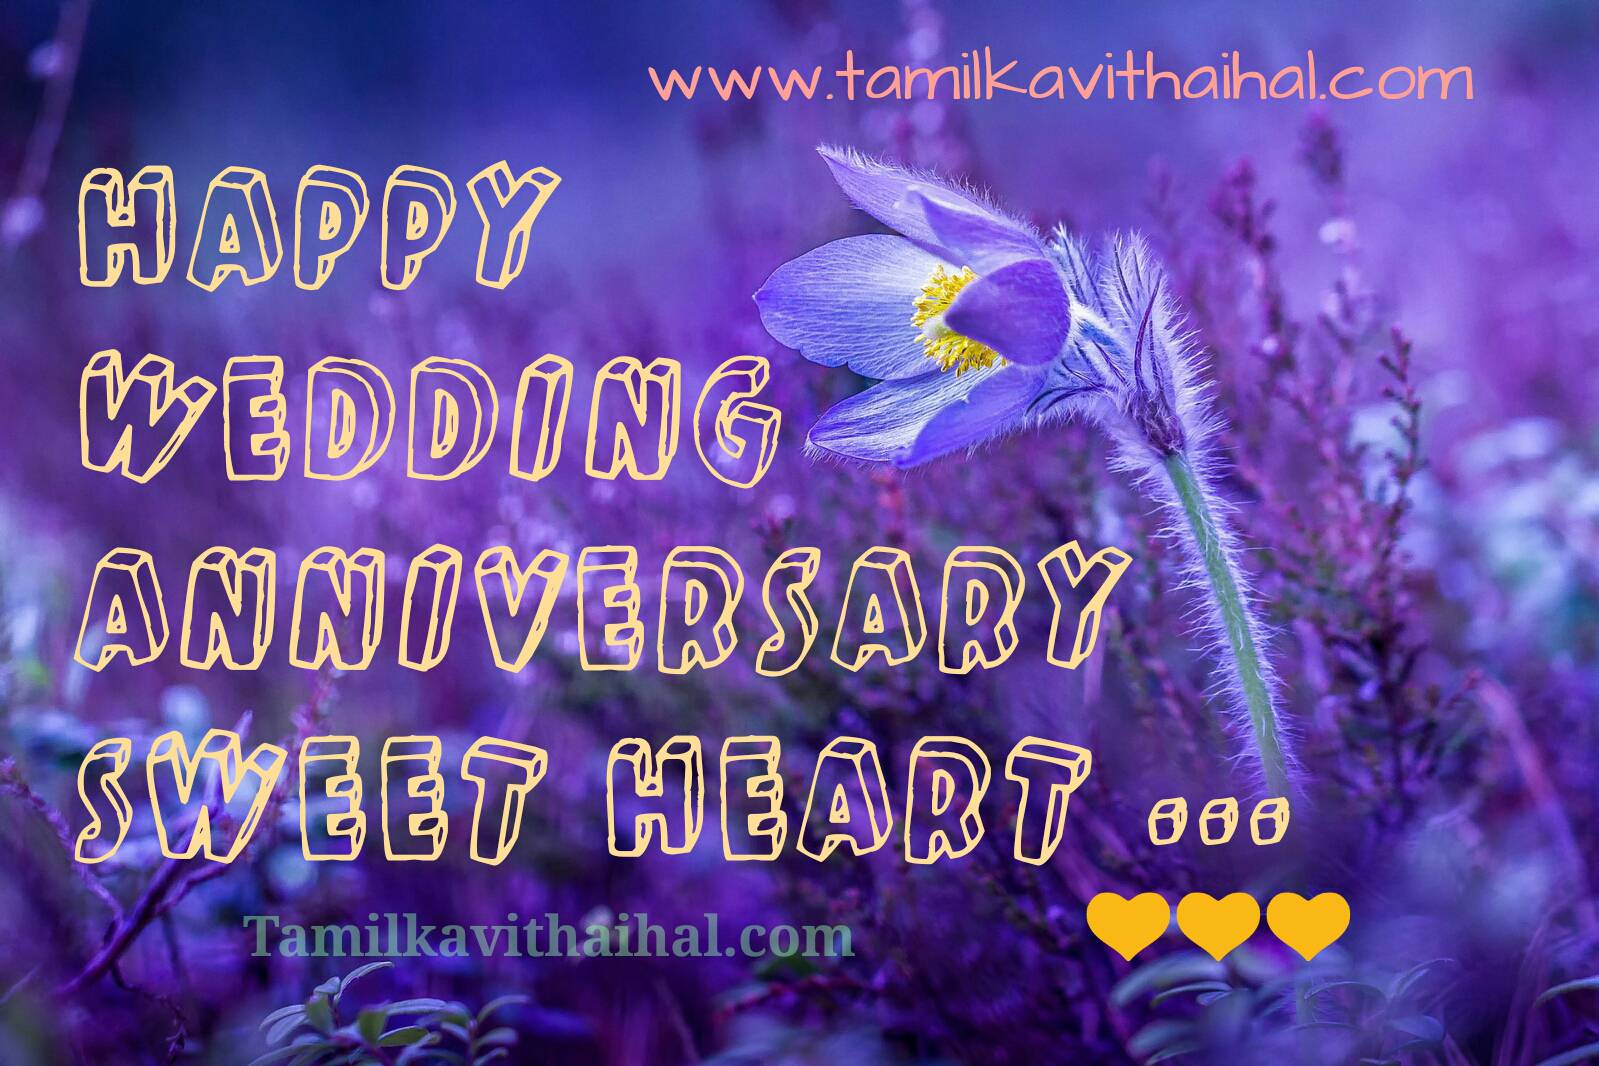 Couple wedding anniversary wishes in tamil thirumanam valthukkal